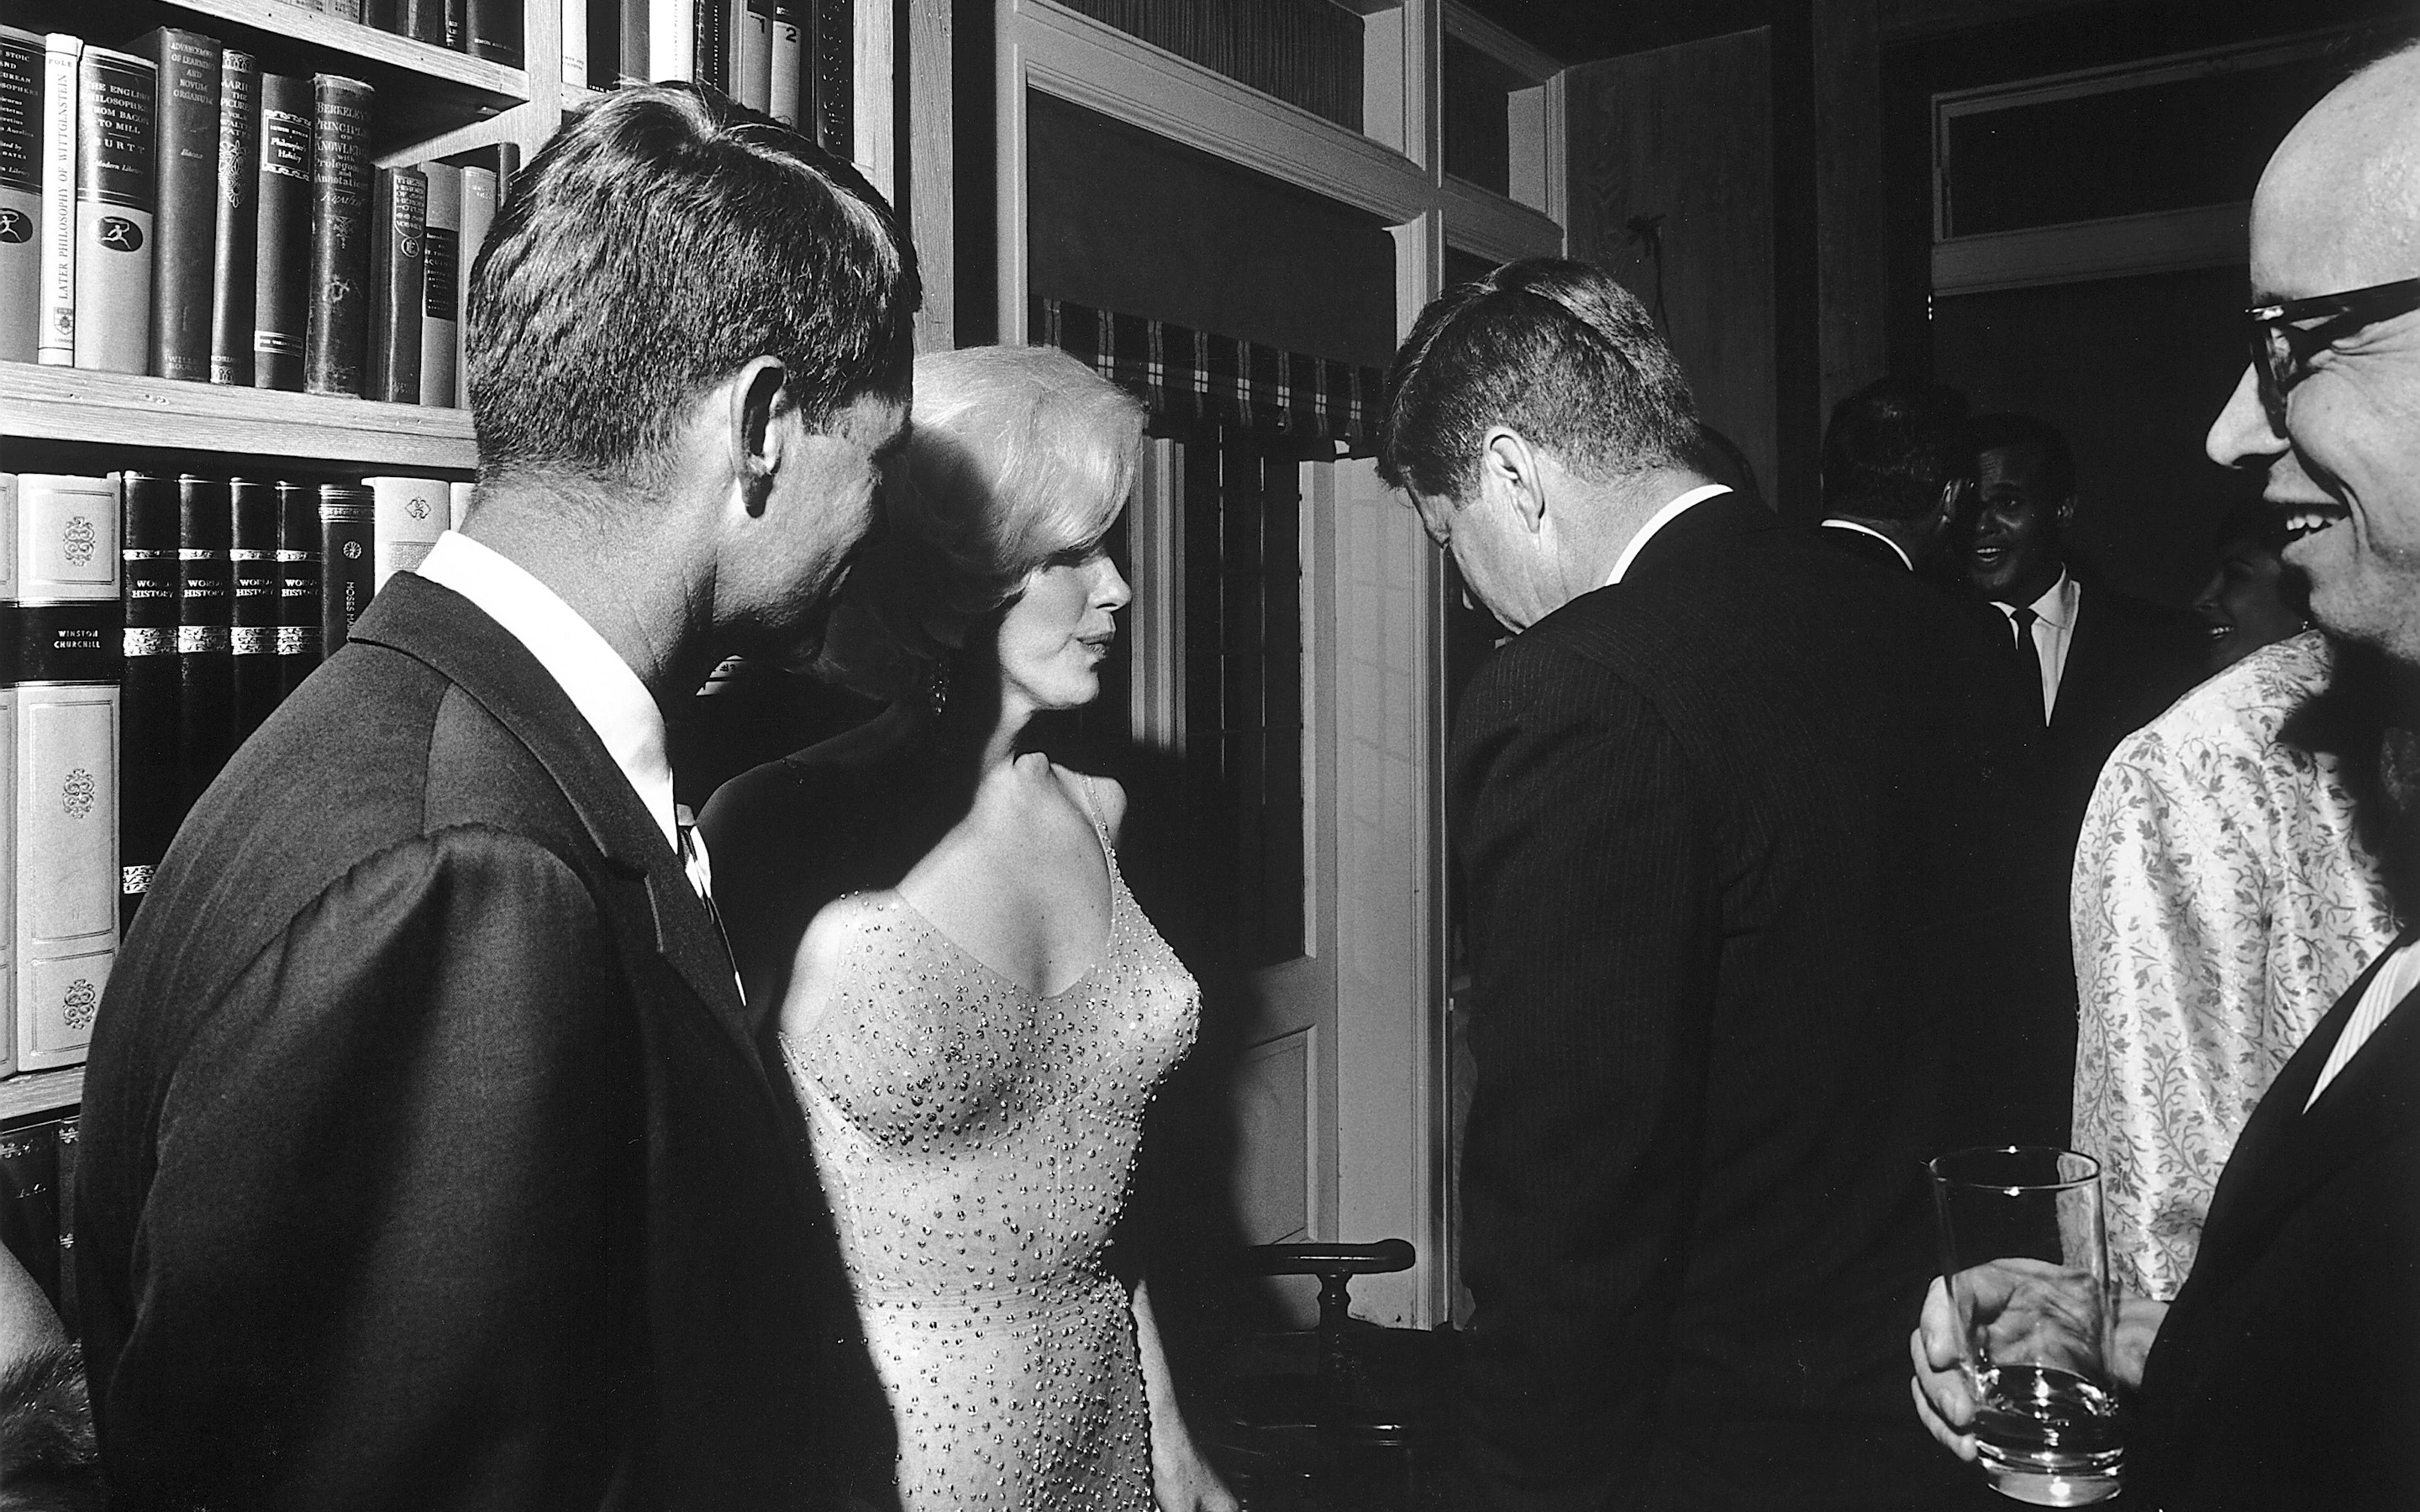 Archivo:JFK and Marilyn Monroe 1962.jpg